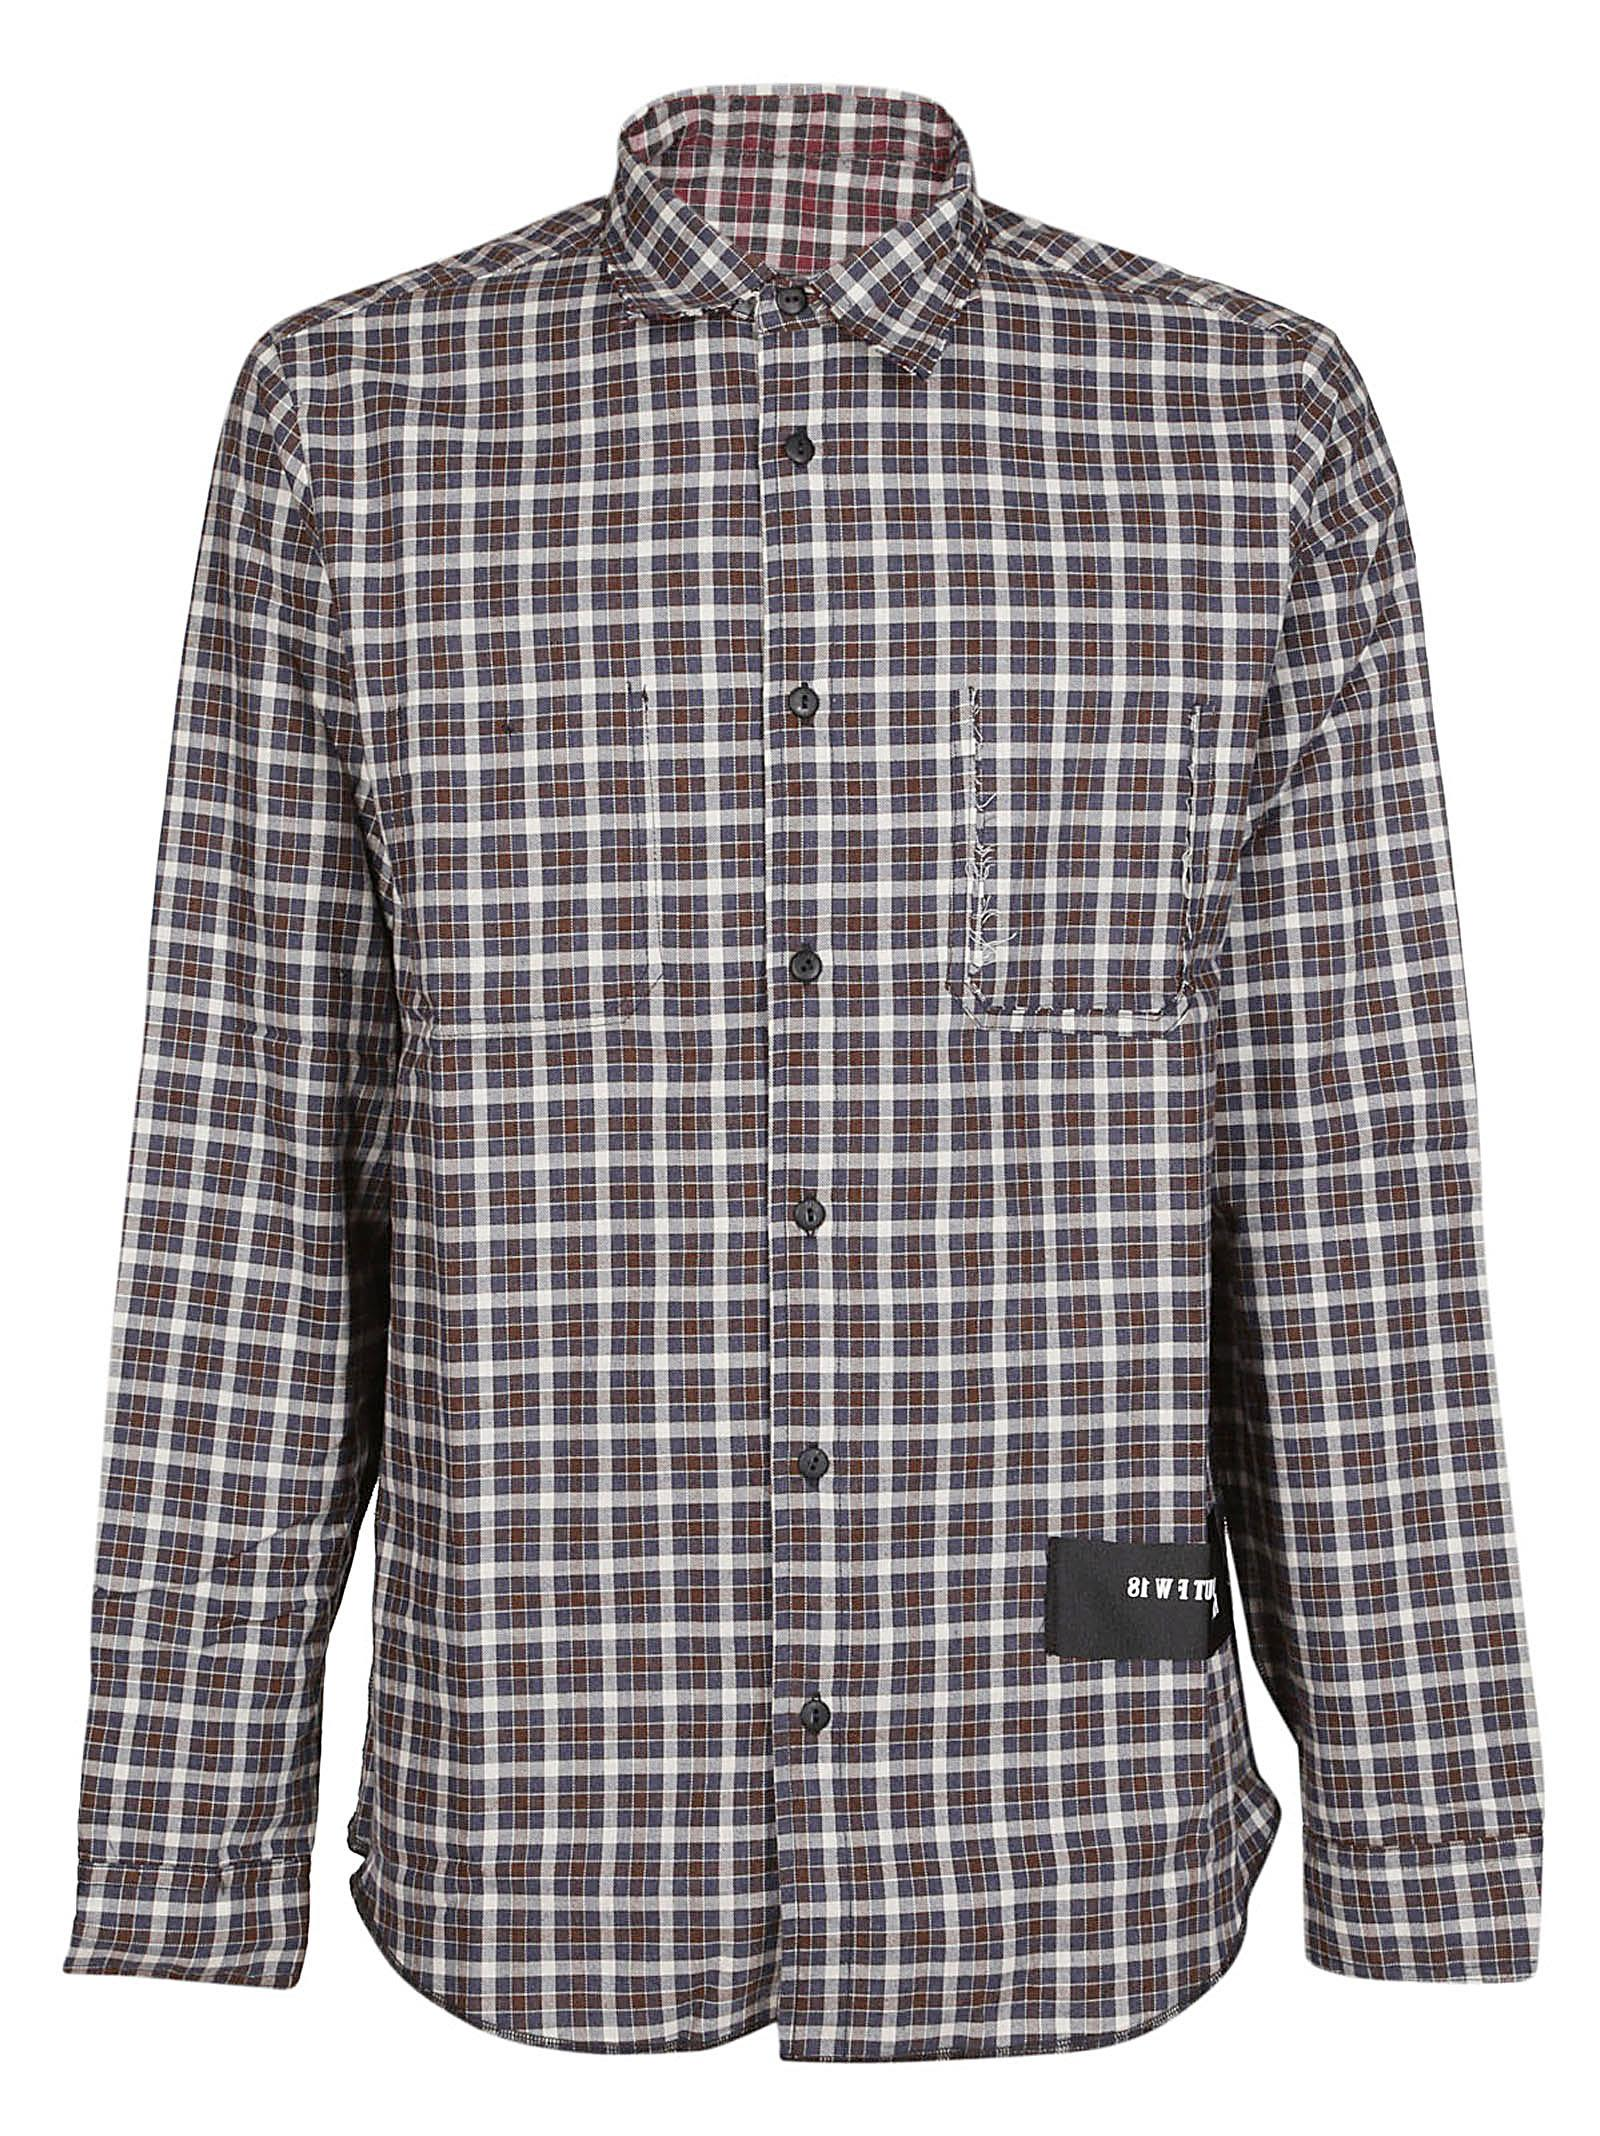 Sold Out Checked Shirt